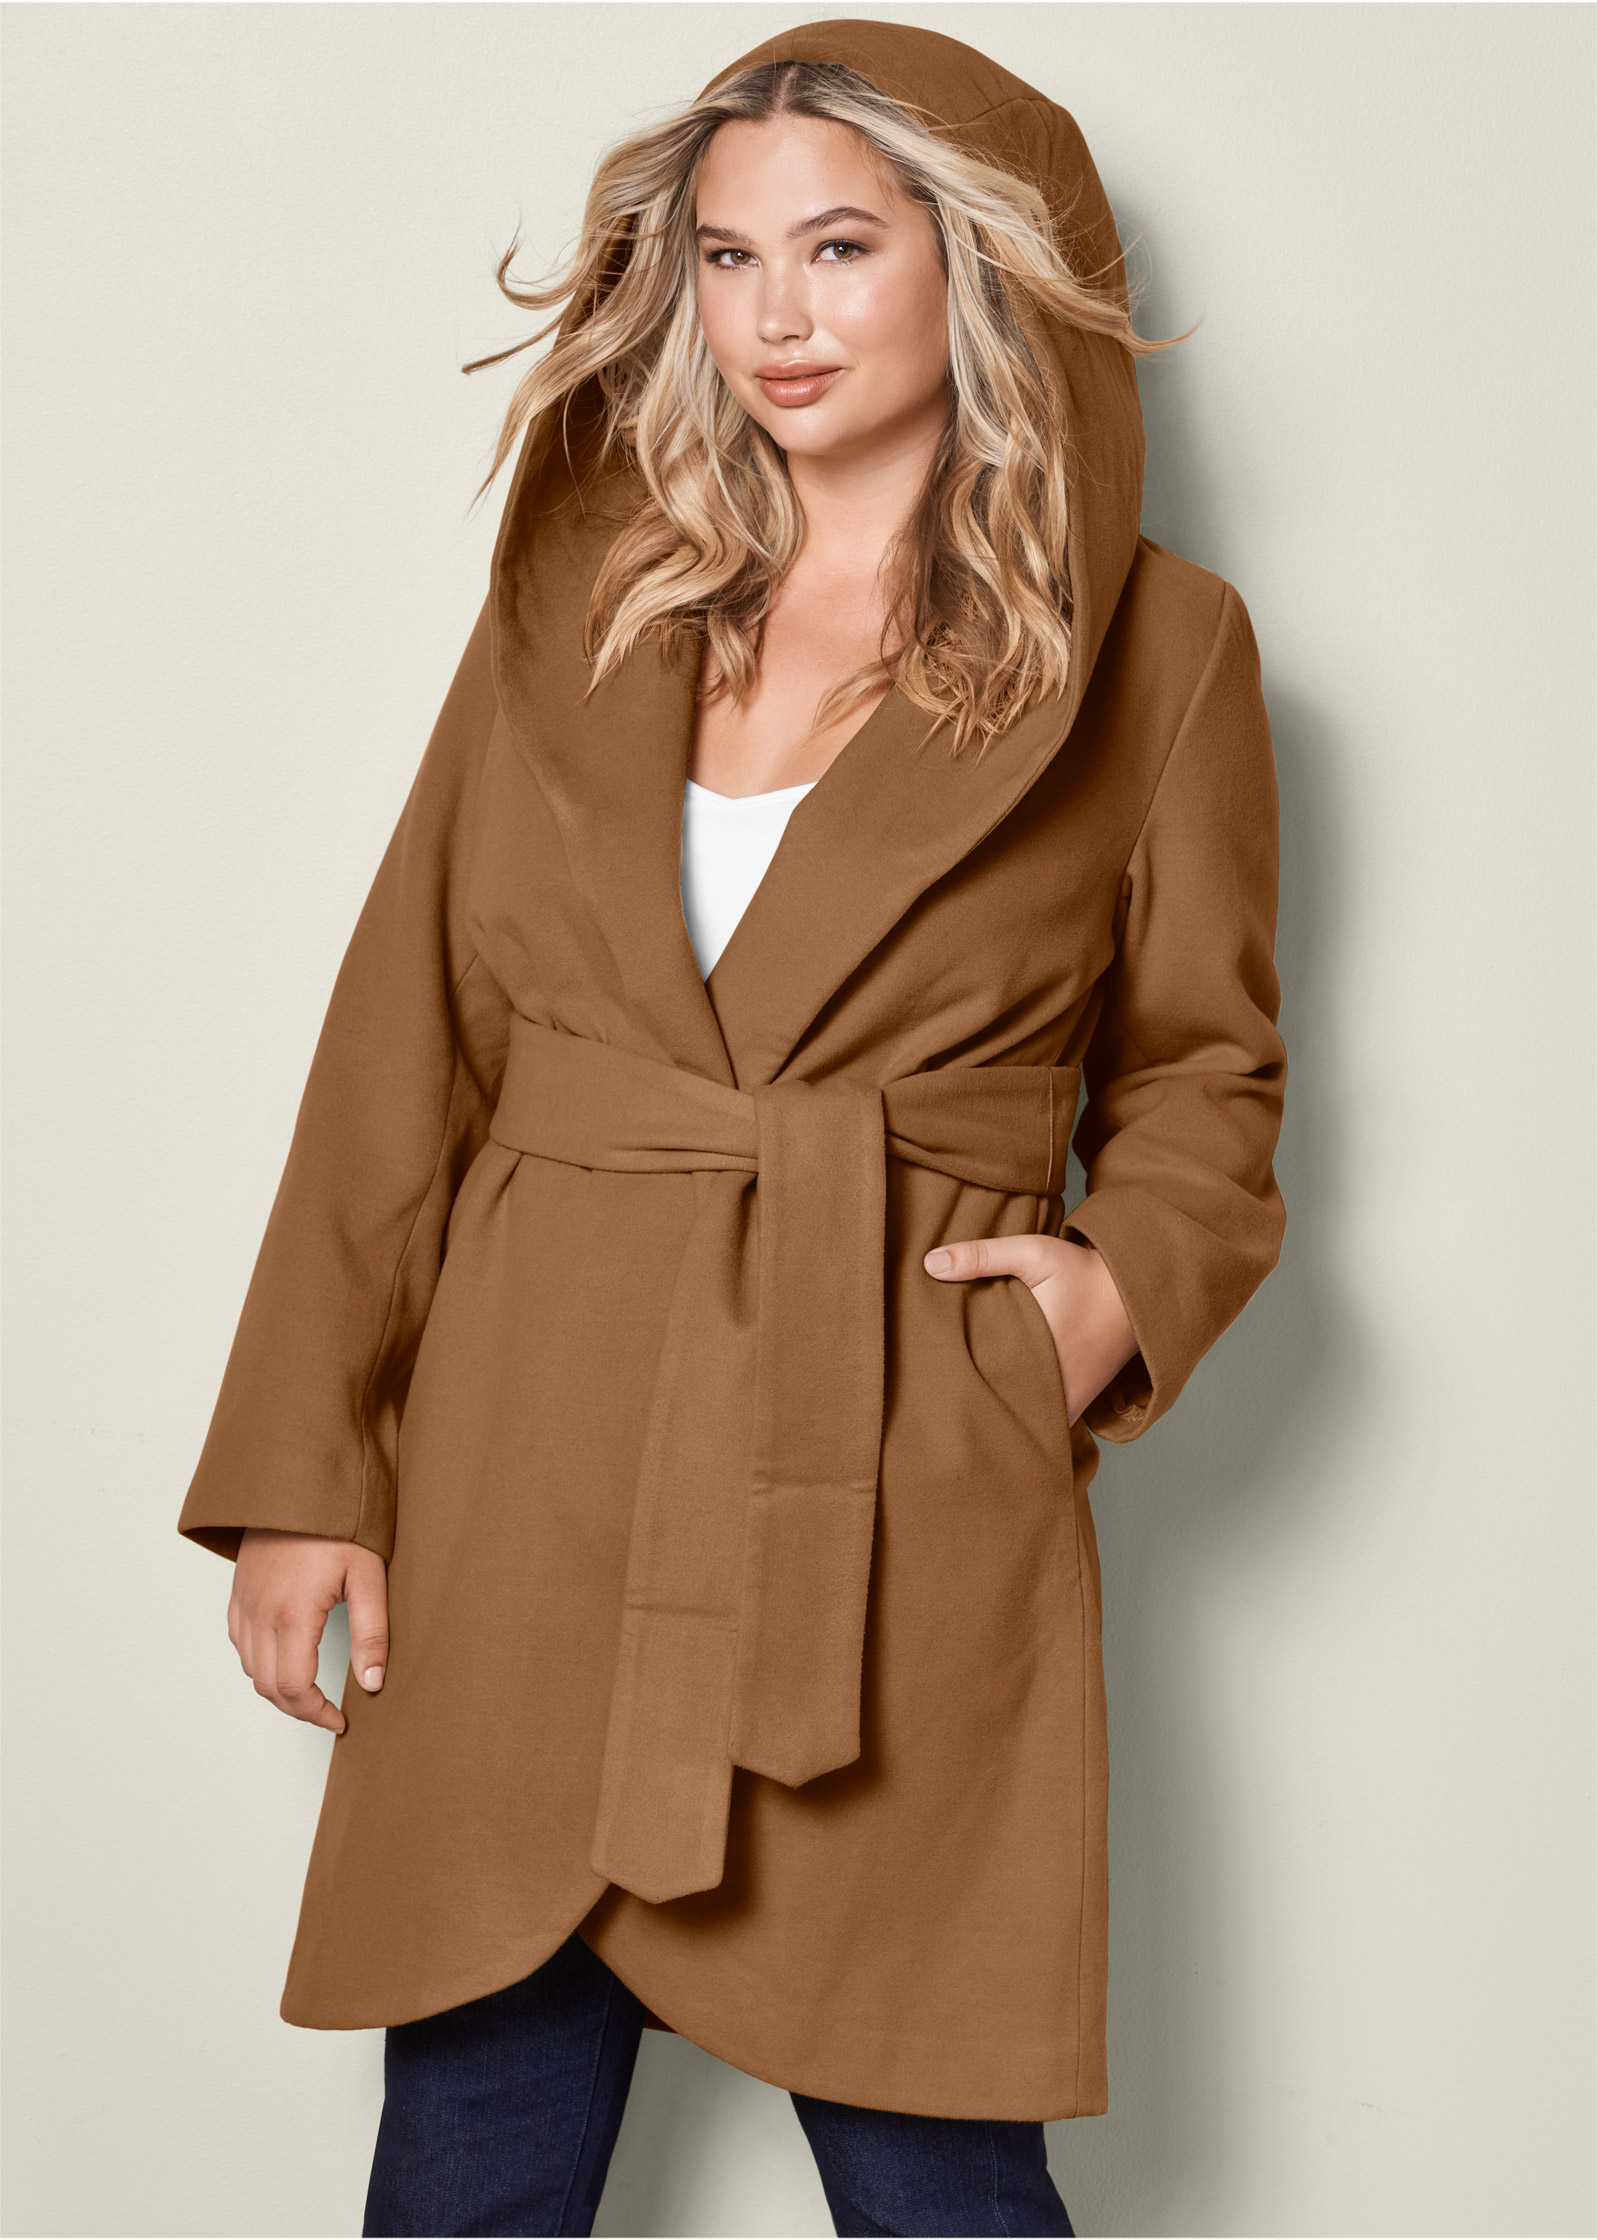 Women's Plus Size Jackets & Coats | Light to Winter | Venus